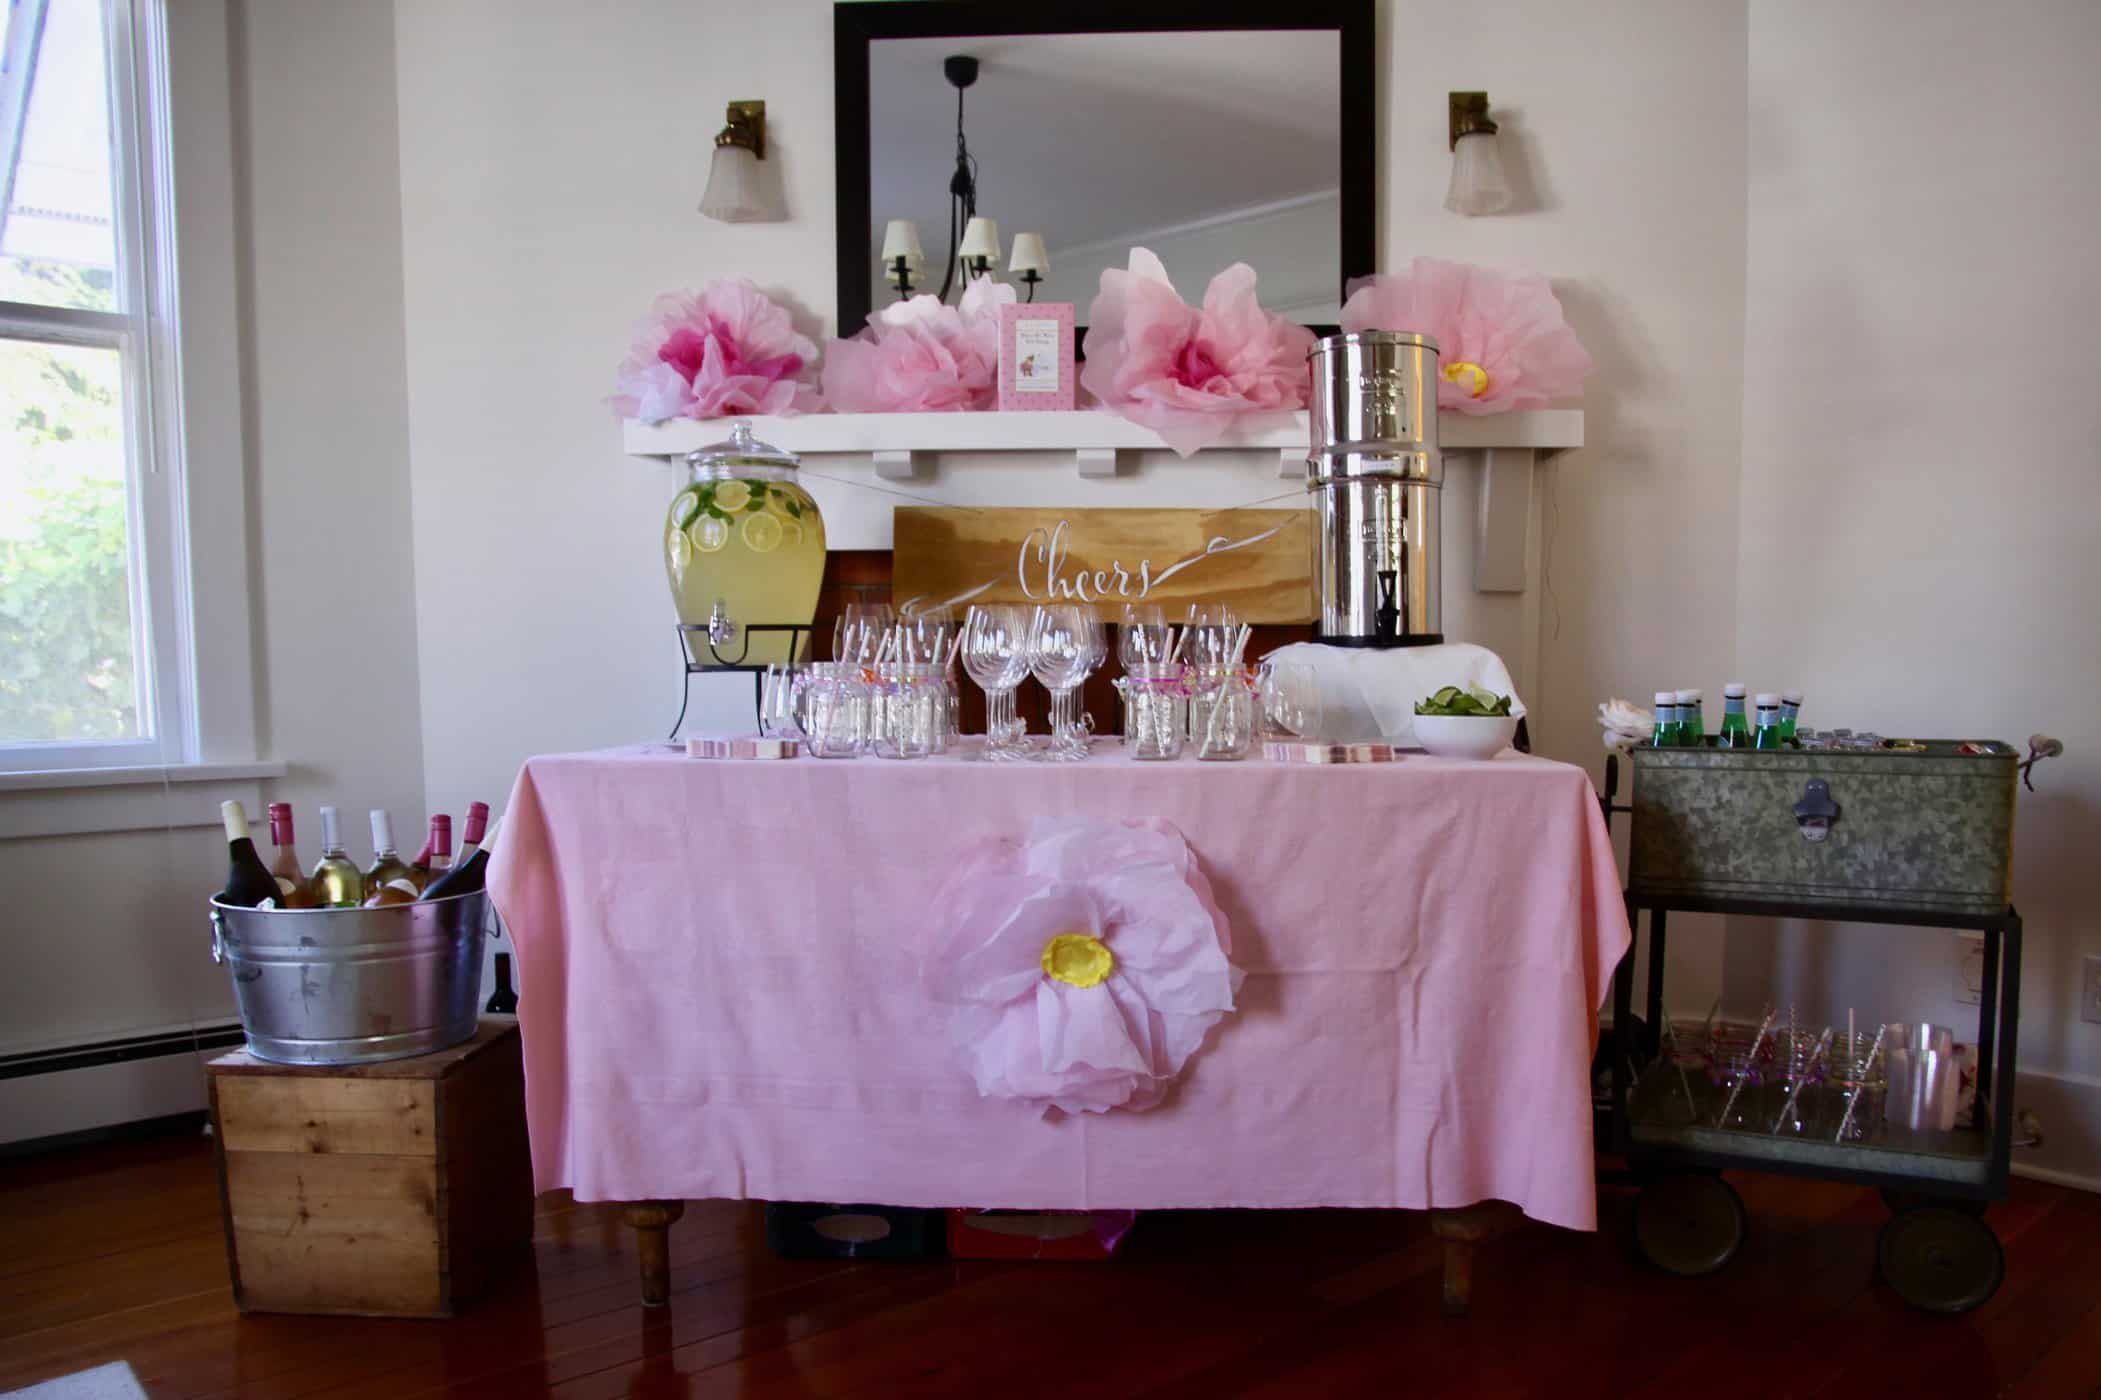 This floral-themed Sip and See party is full of simple DIY's, fresh flowers, and yummy sweets - Sip & See Baby Shower   Home for the Harvest #SipandSee #Sip&See #Baby #BabyShower #BabyParty #FloralParty #FloralTheme #BeeTheme #FlowerTheme #FlowerParty #HomefortheHarvest